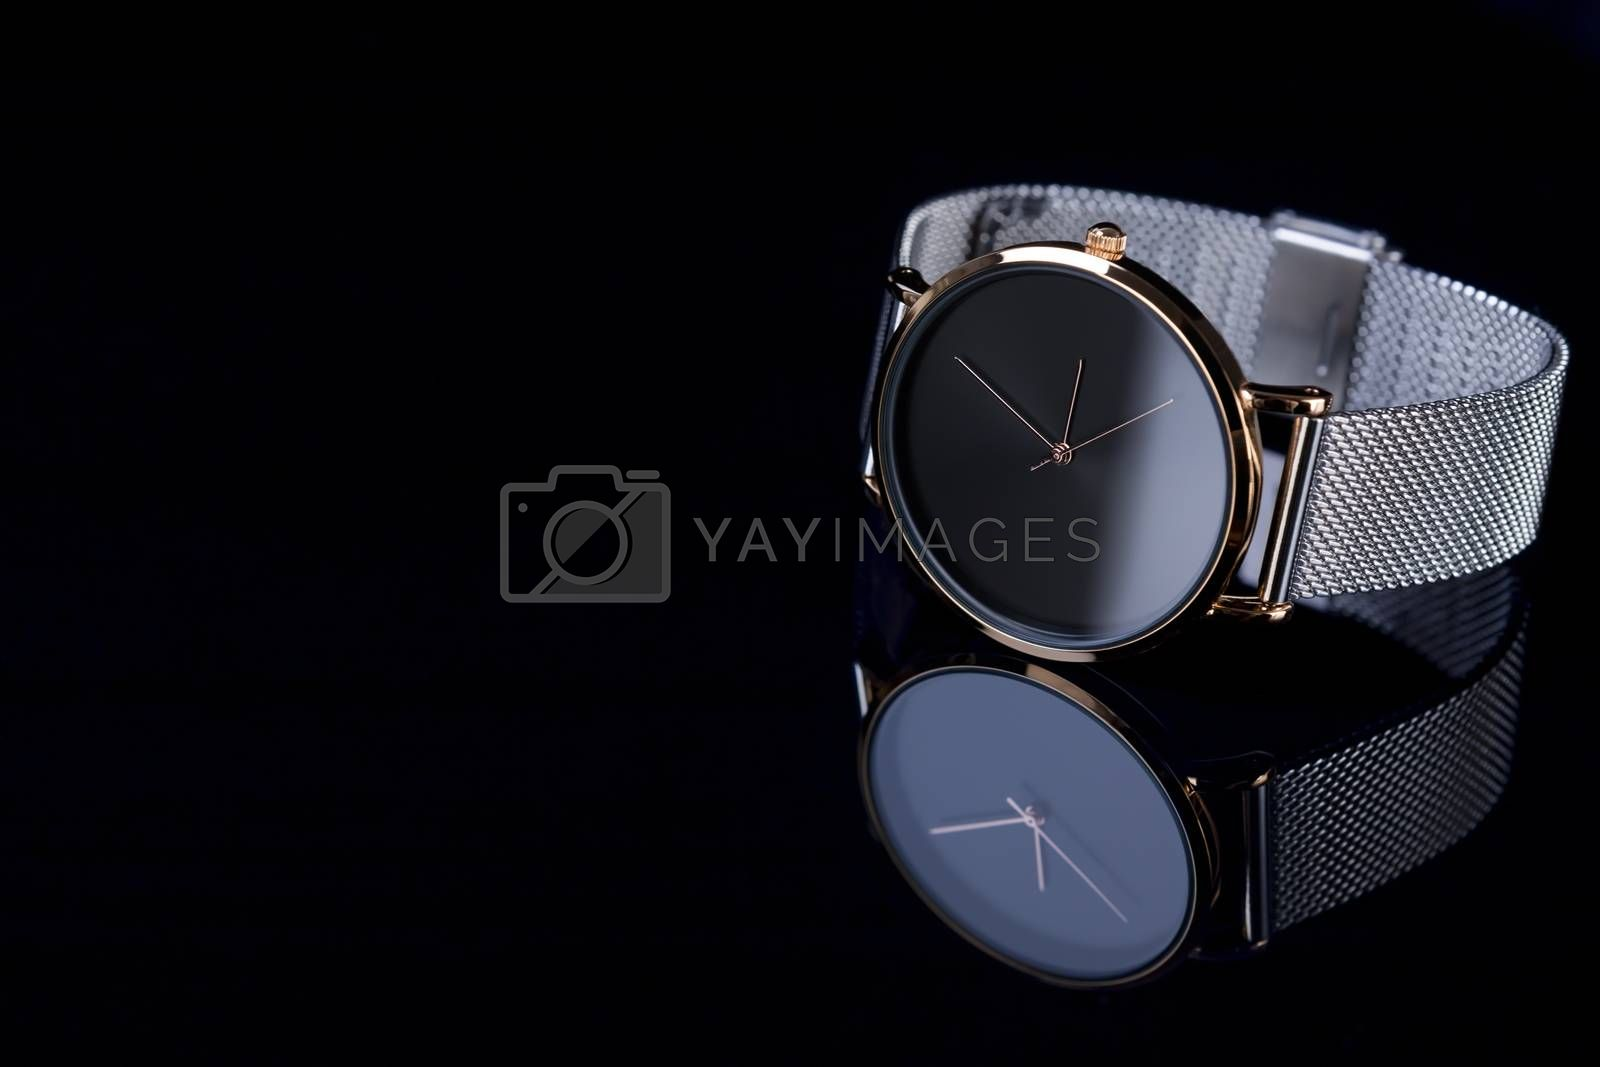 Black wrist watch for women with metal bracelet on glossy black background.